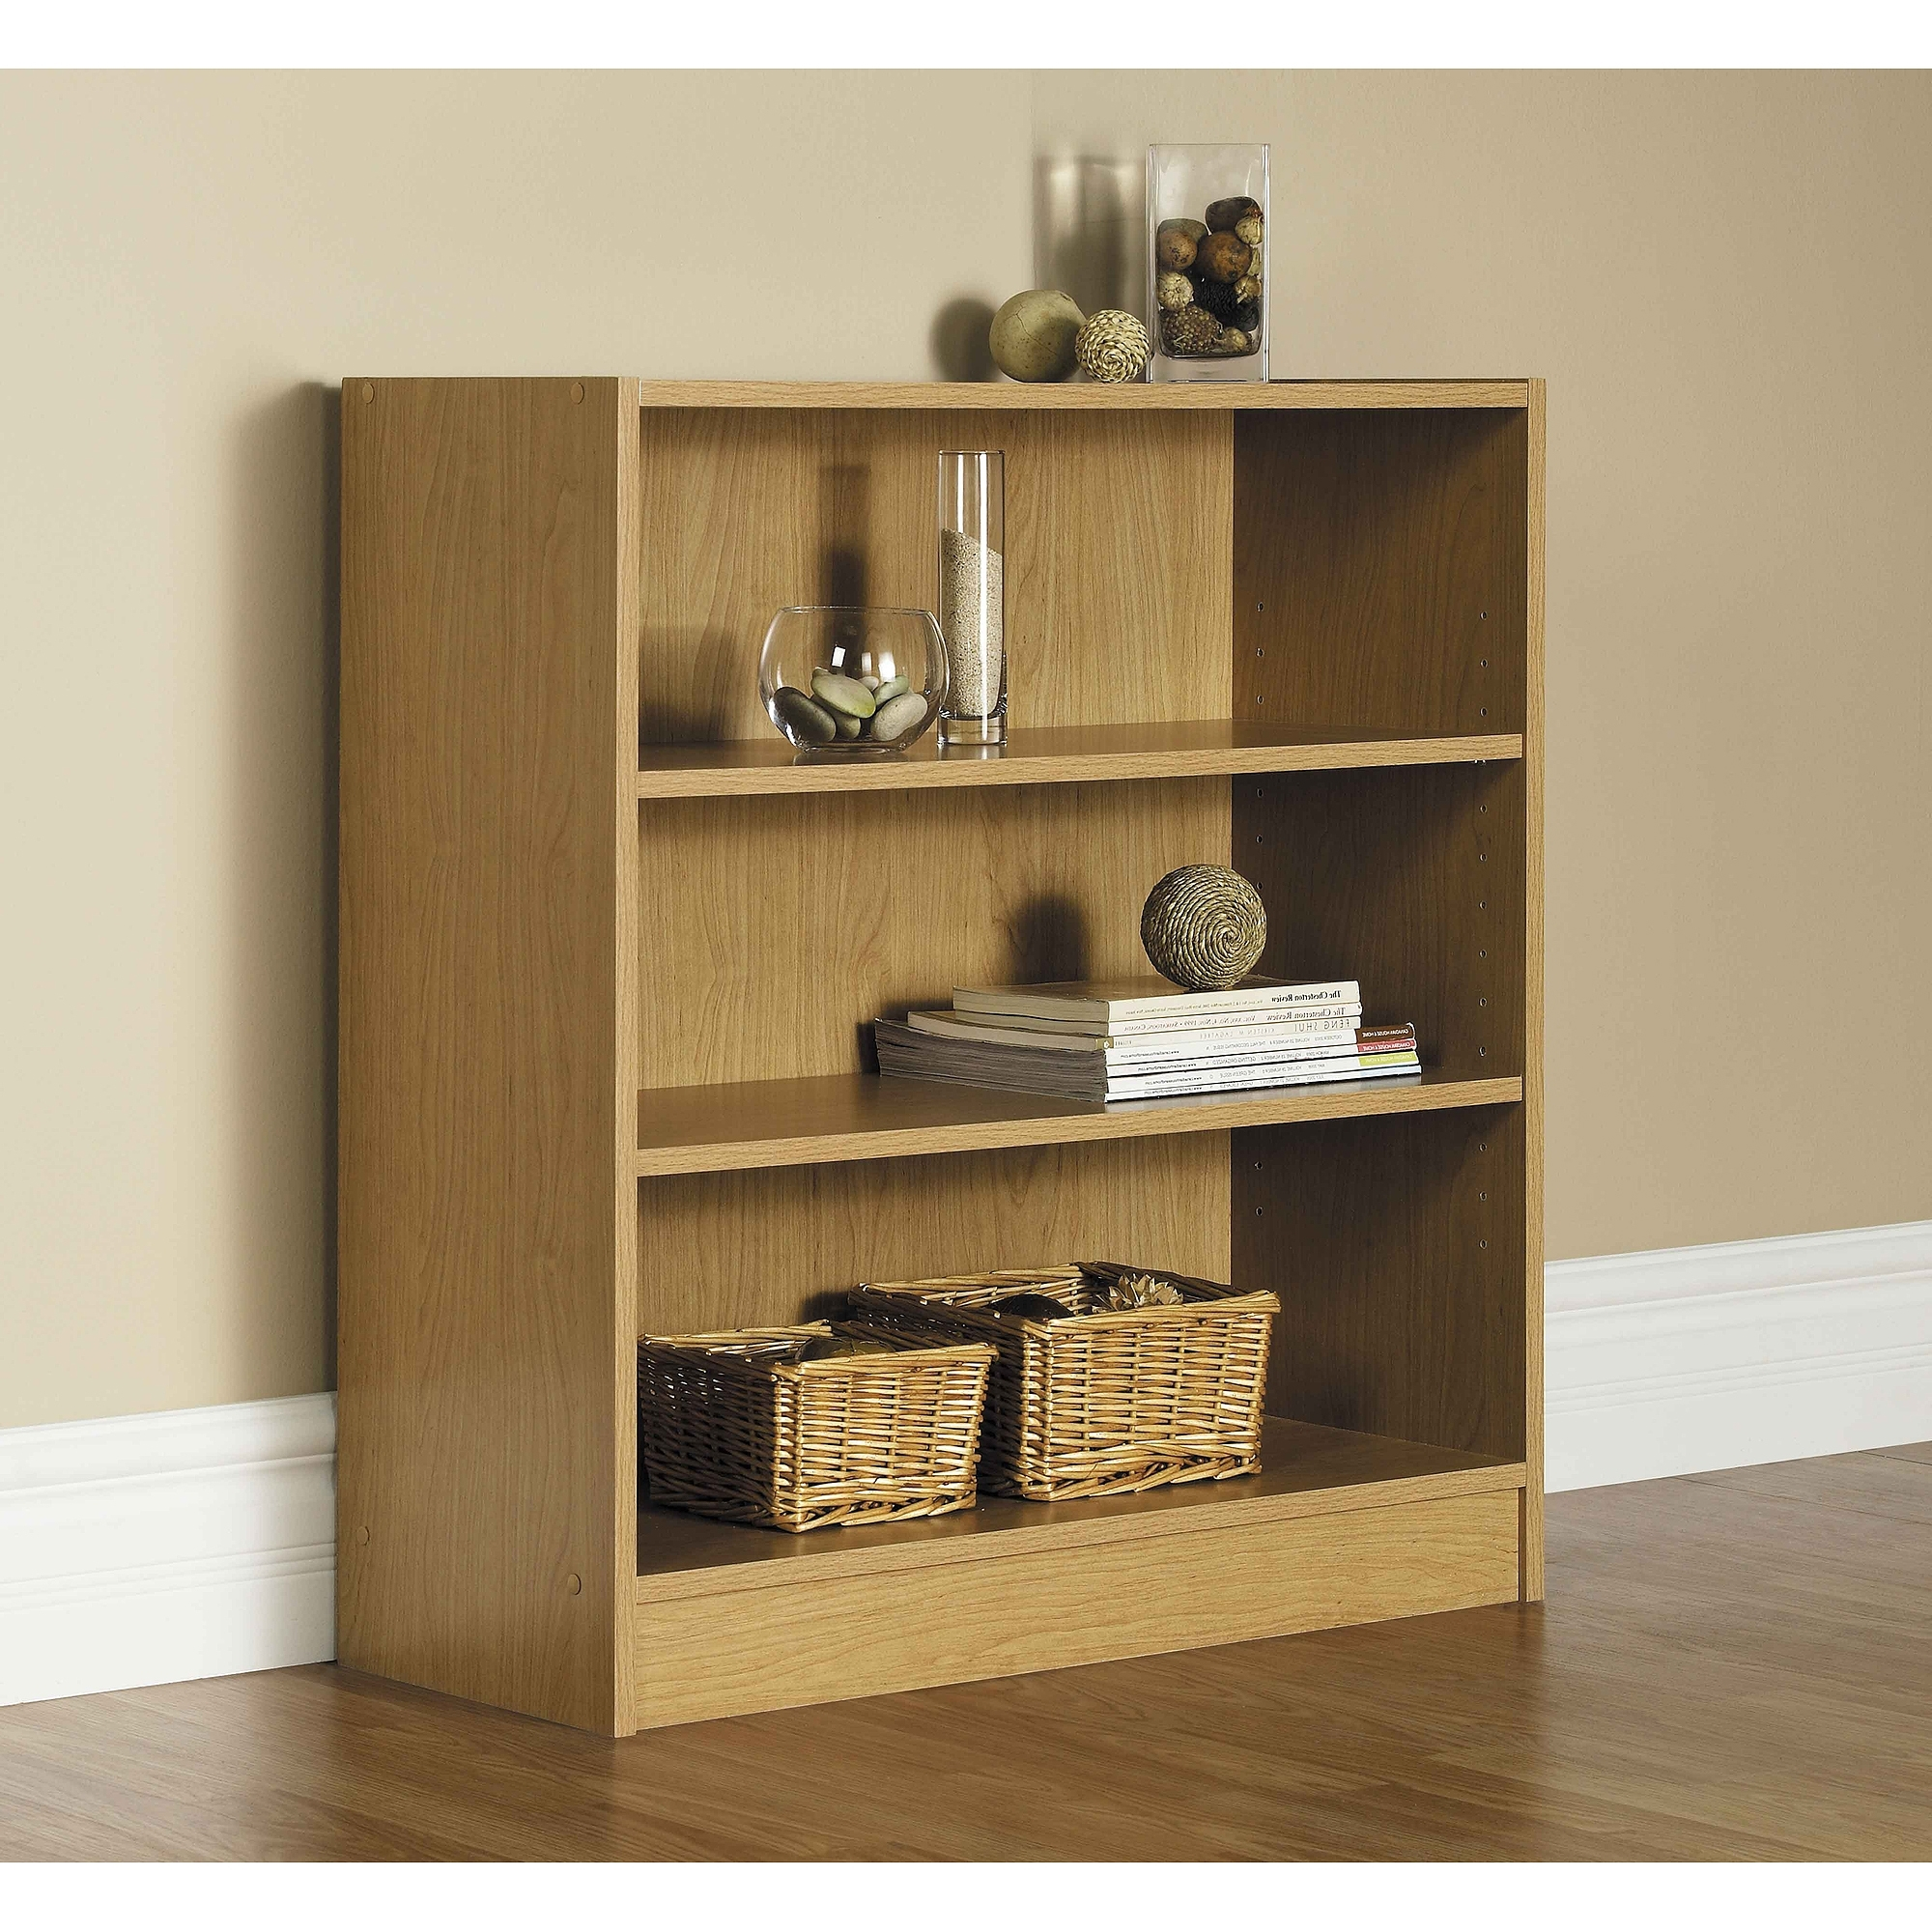 Small Walmart Bookcases Throughout 2017 Orion Wide 3 Shelf Standard Bookcase, Multiple Finishes – Walmart (View 11 of 15)